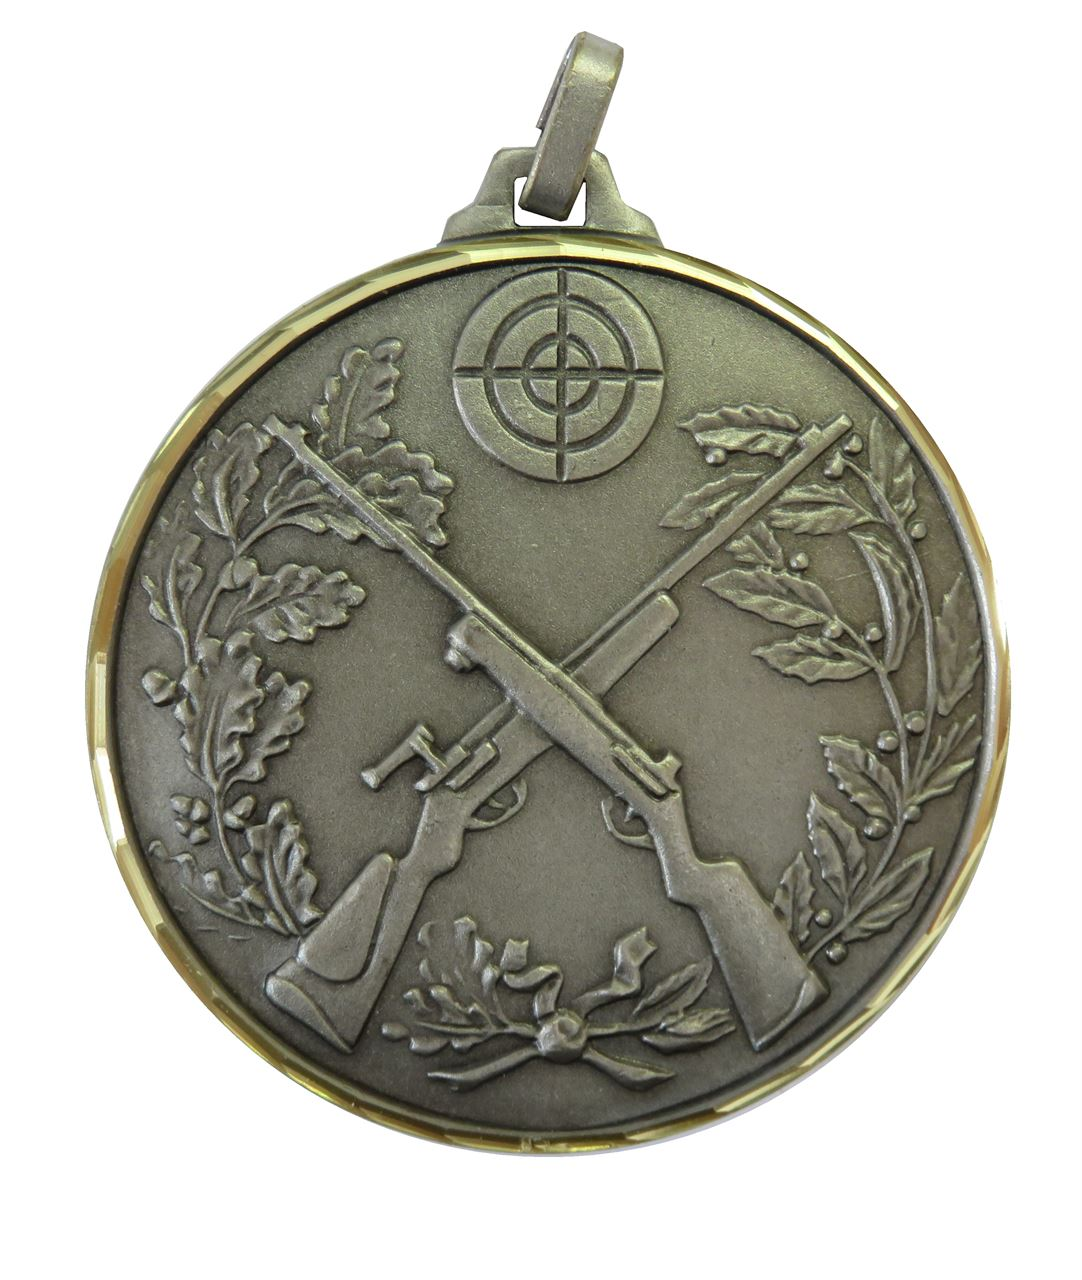 Silver Faceted Cross Rifles Medal (size: 42mm) - 394F/42S